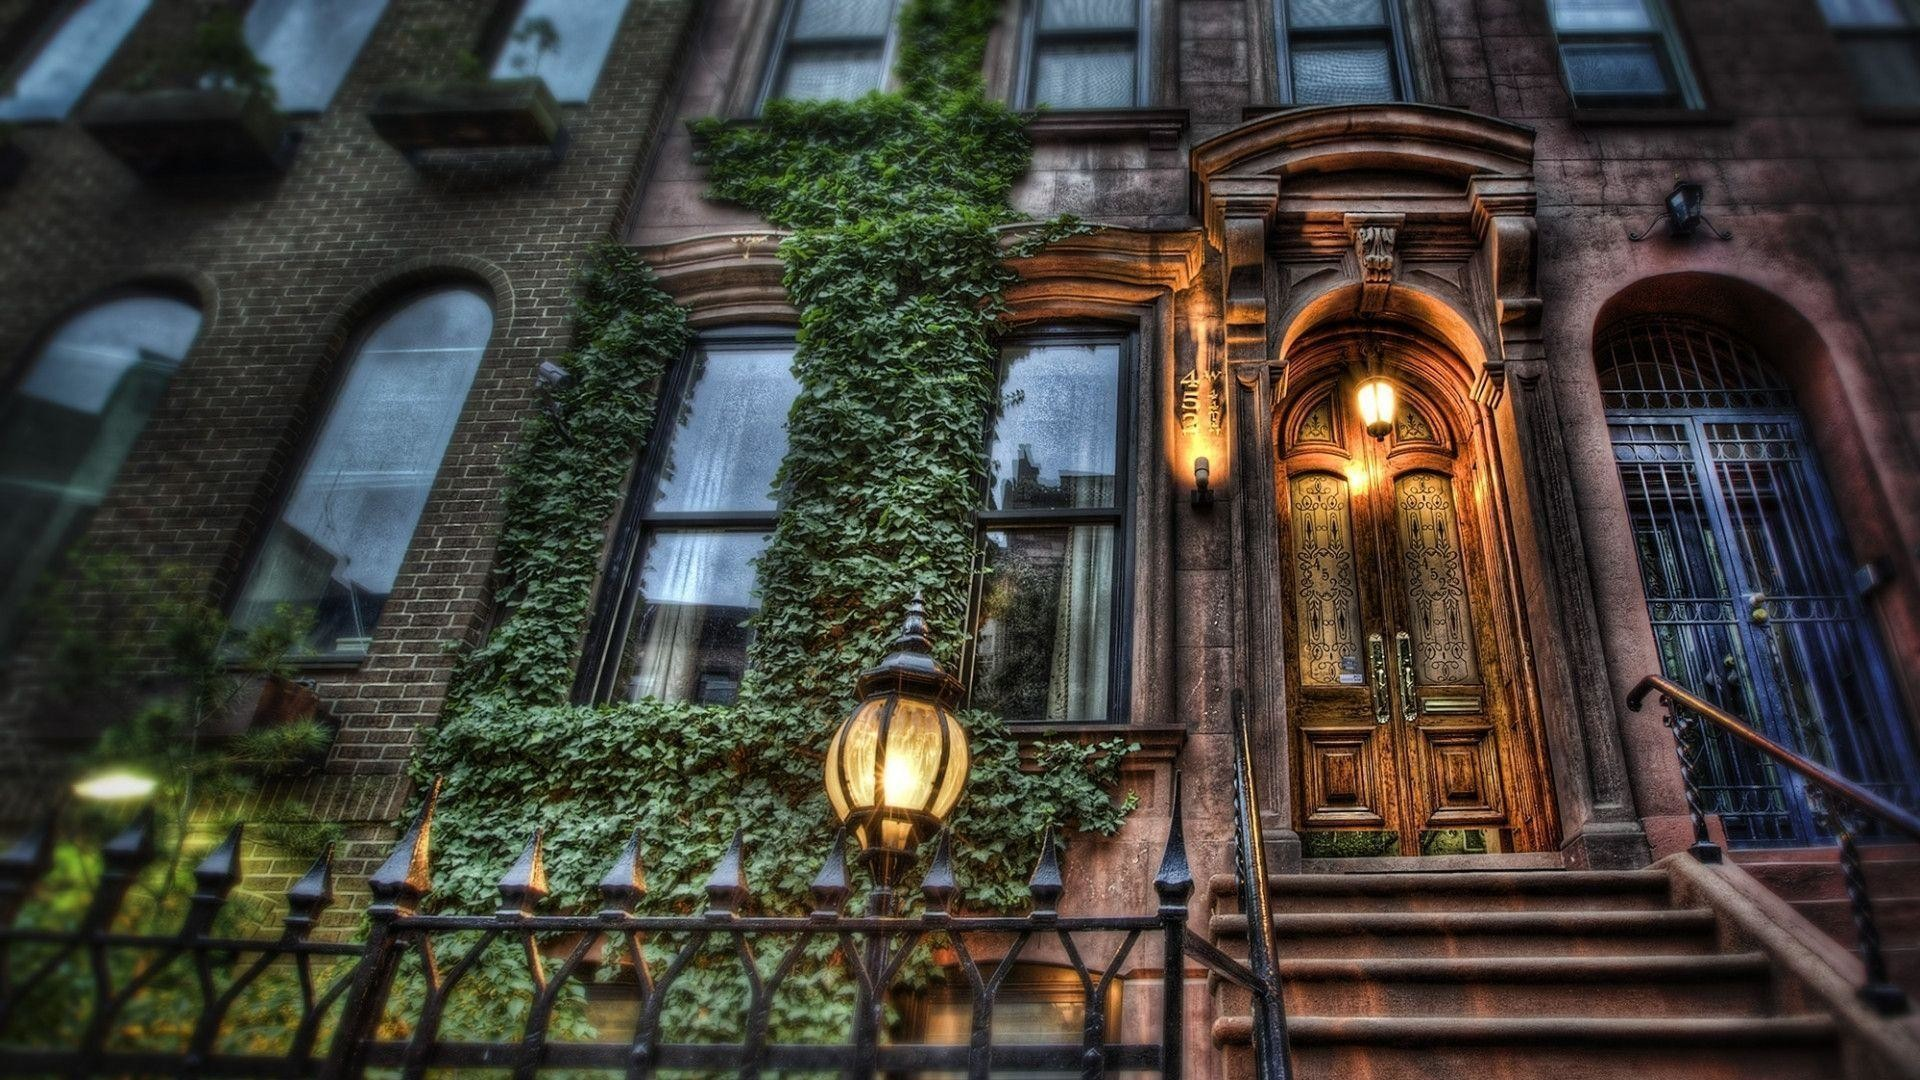 HD 452 W.44th Street Nyc Hdr Wallpaper | Download Free – 72650